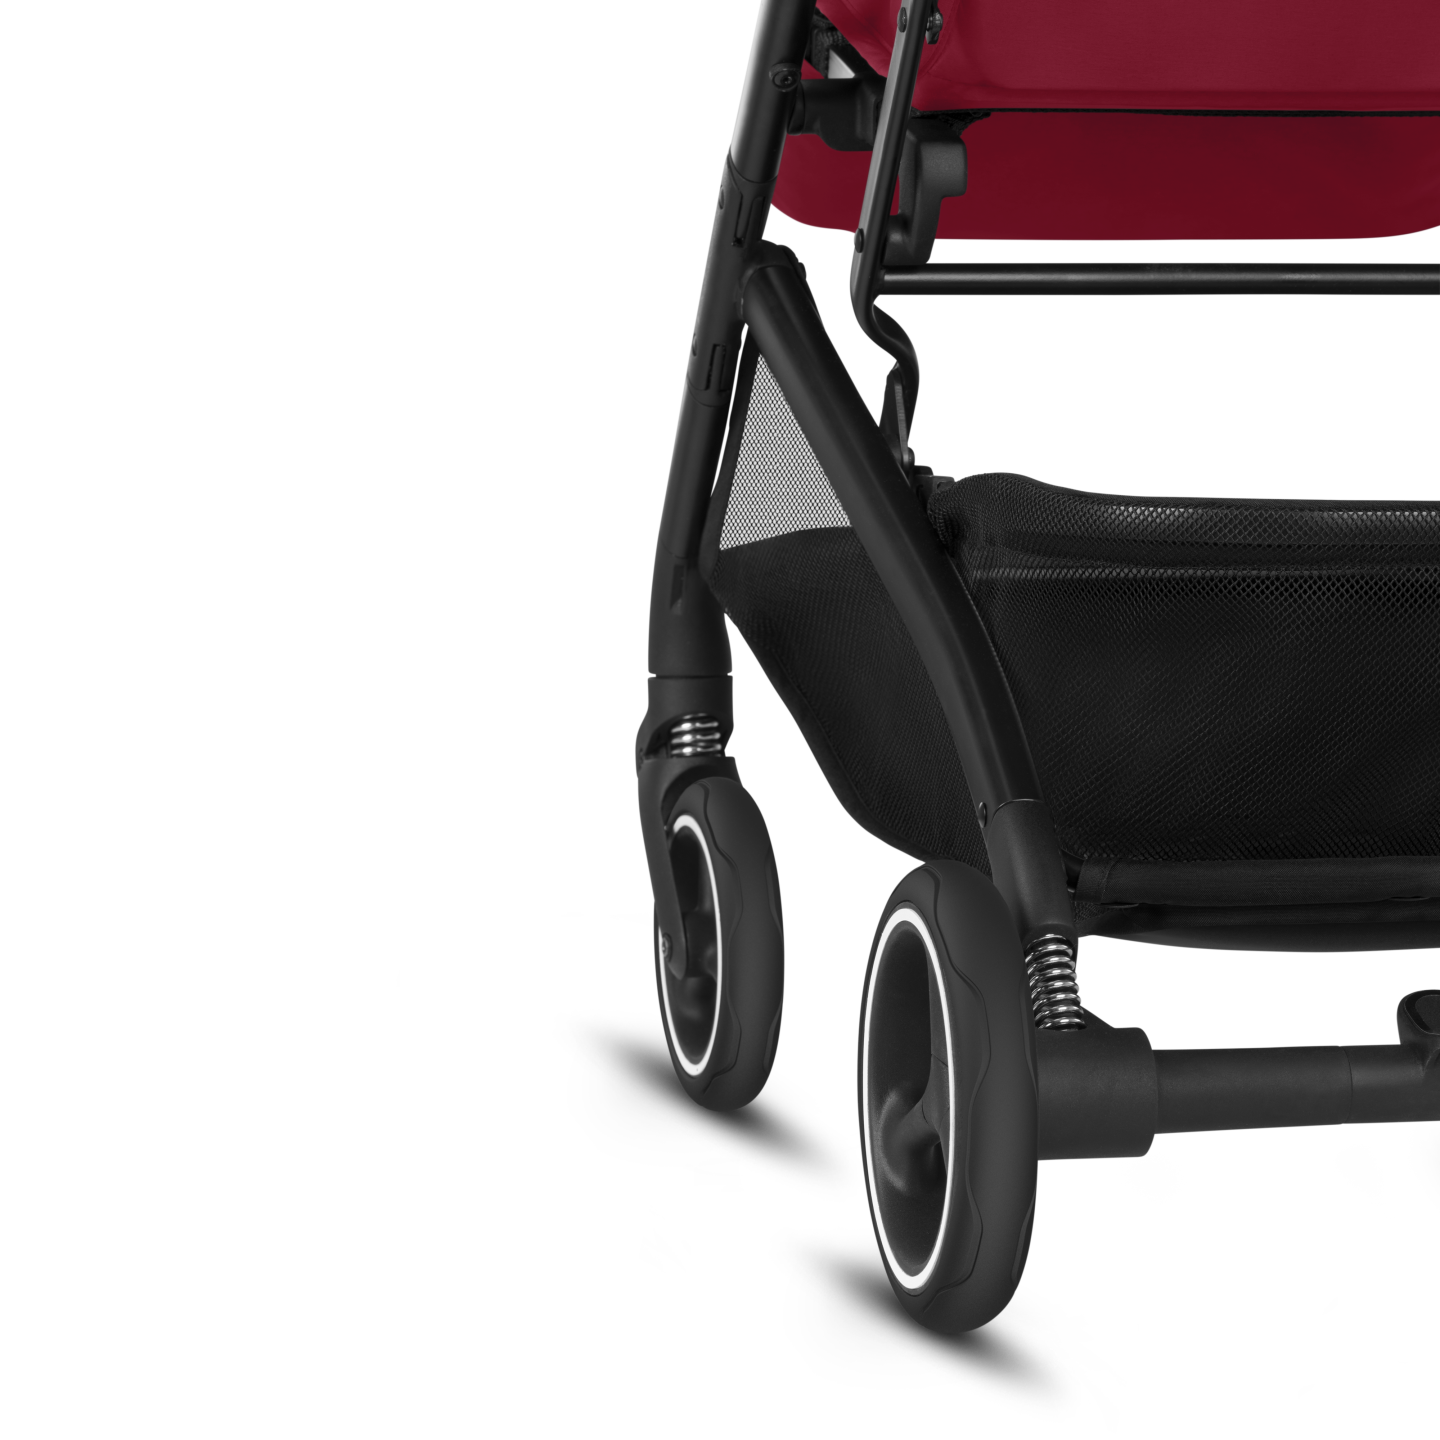 https://images.gb-online.com/q_85,dn_72,h_1440/gbo/product-Qbit_-All-City-Rose-Red-City-single-wheels-with-all-wheel-suspension-8723-8720-8589_qalnyl